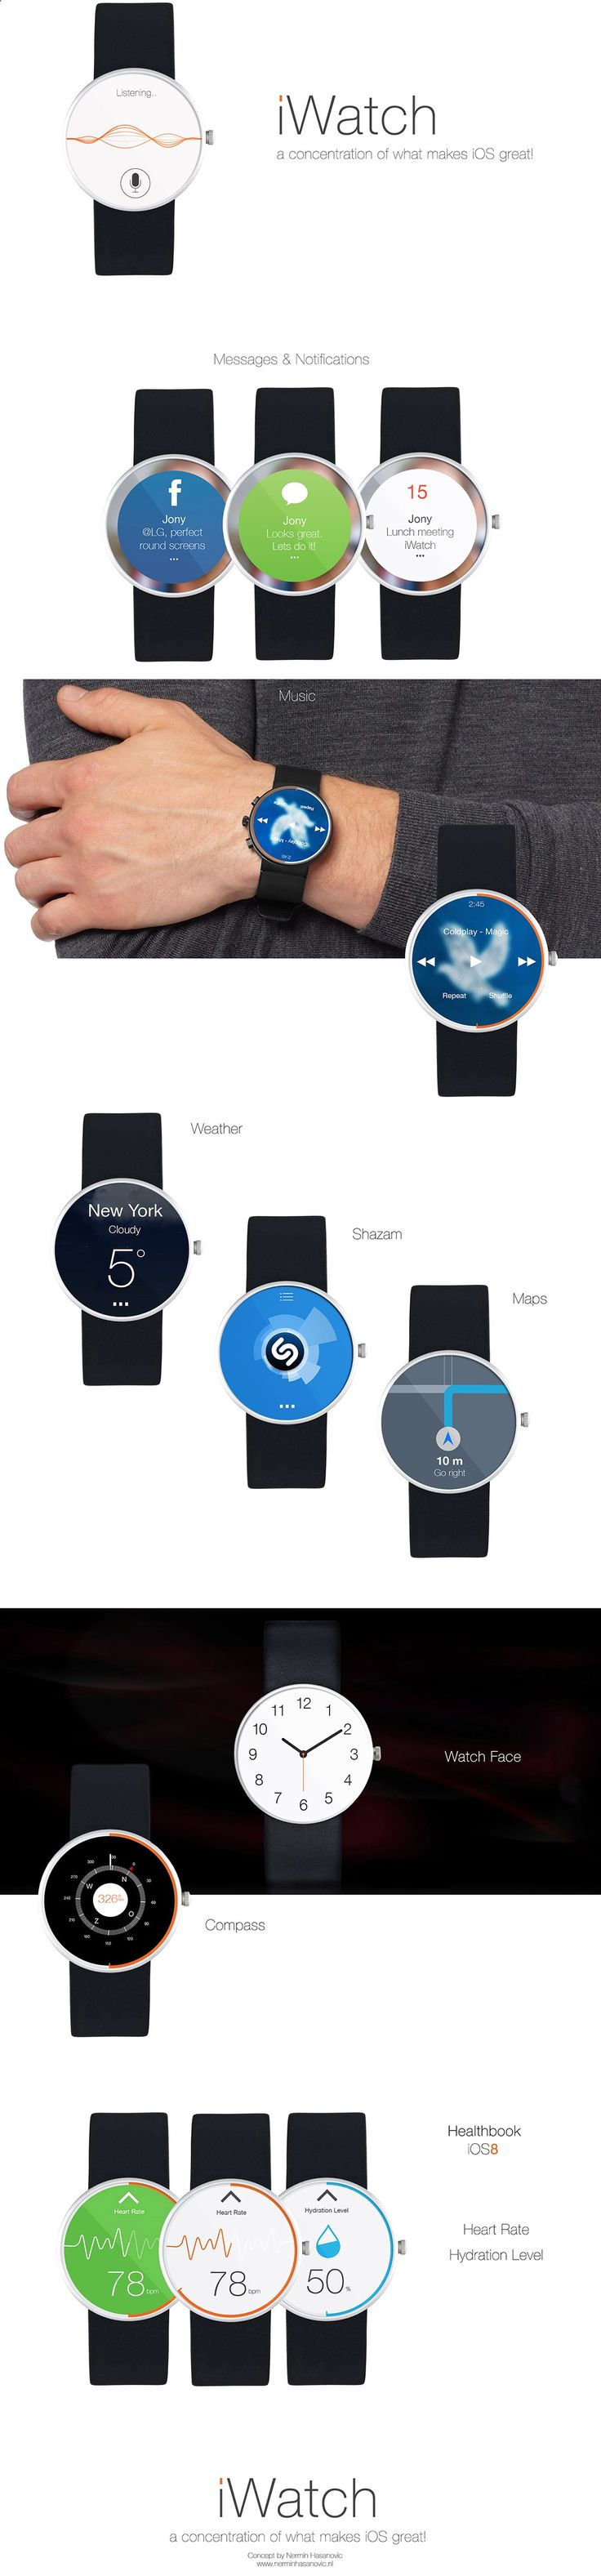 Tips For Choosing Smartwatch #smartwatch #iOS8 iWatch - a concentration of what make iOS great - If you want to buy a smartwatch and you do not know which one, you need to review well not only the prices, but also which one is right for you. To do this, we give you useful tips to make the best choice.